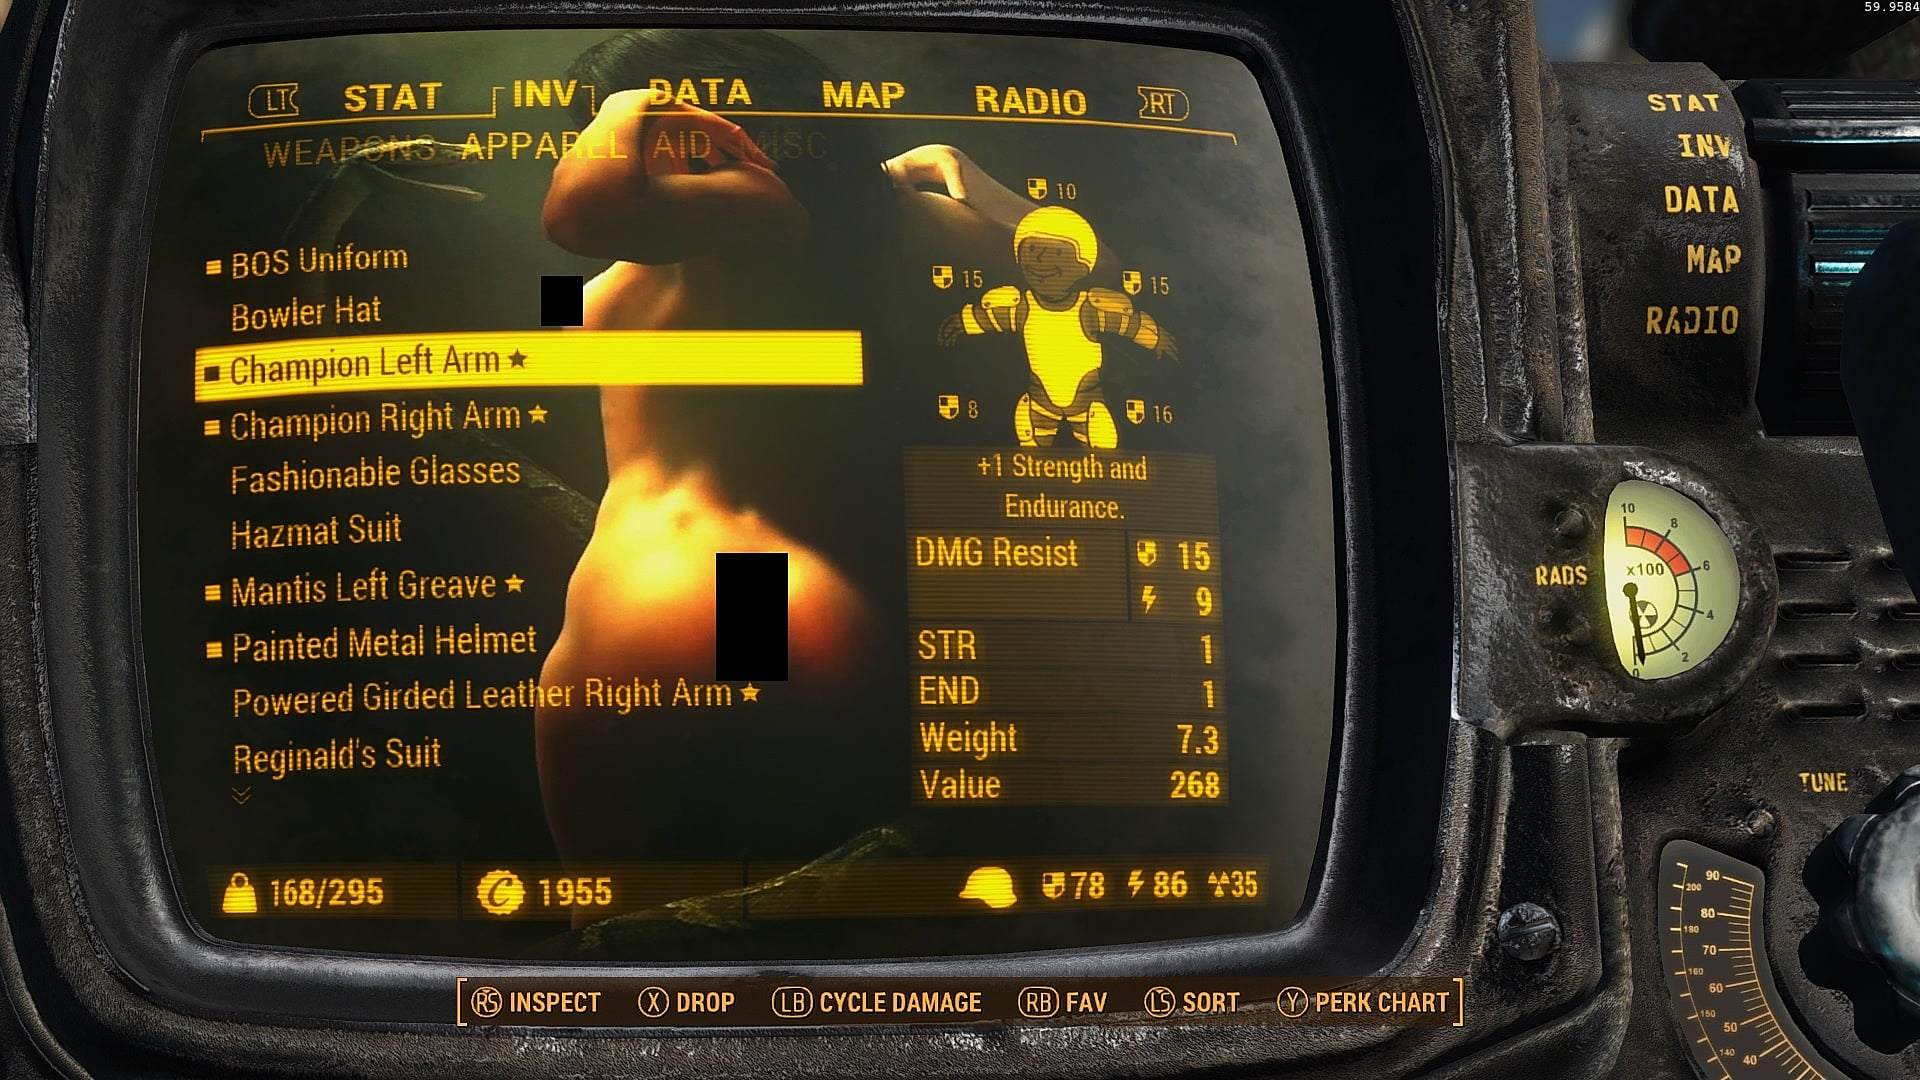 The Best Nsfw Nude Fallout 4 Mods And Where To Find Them -9170